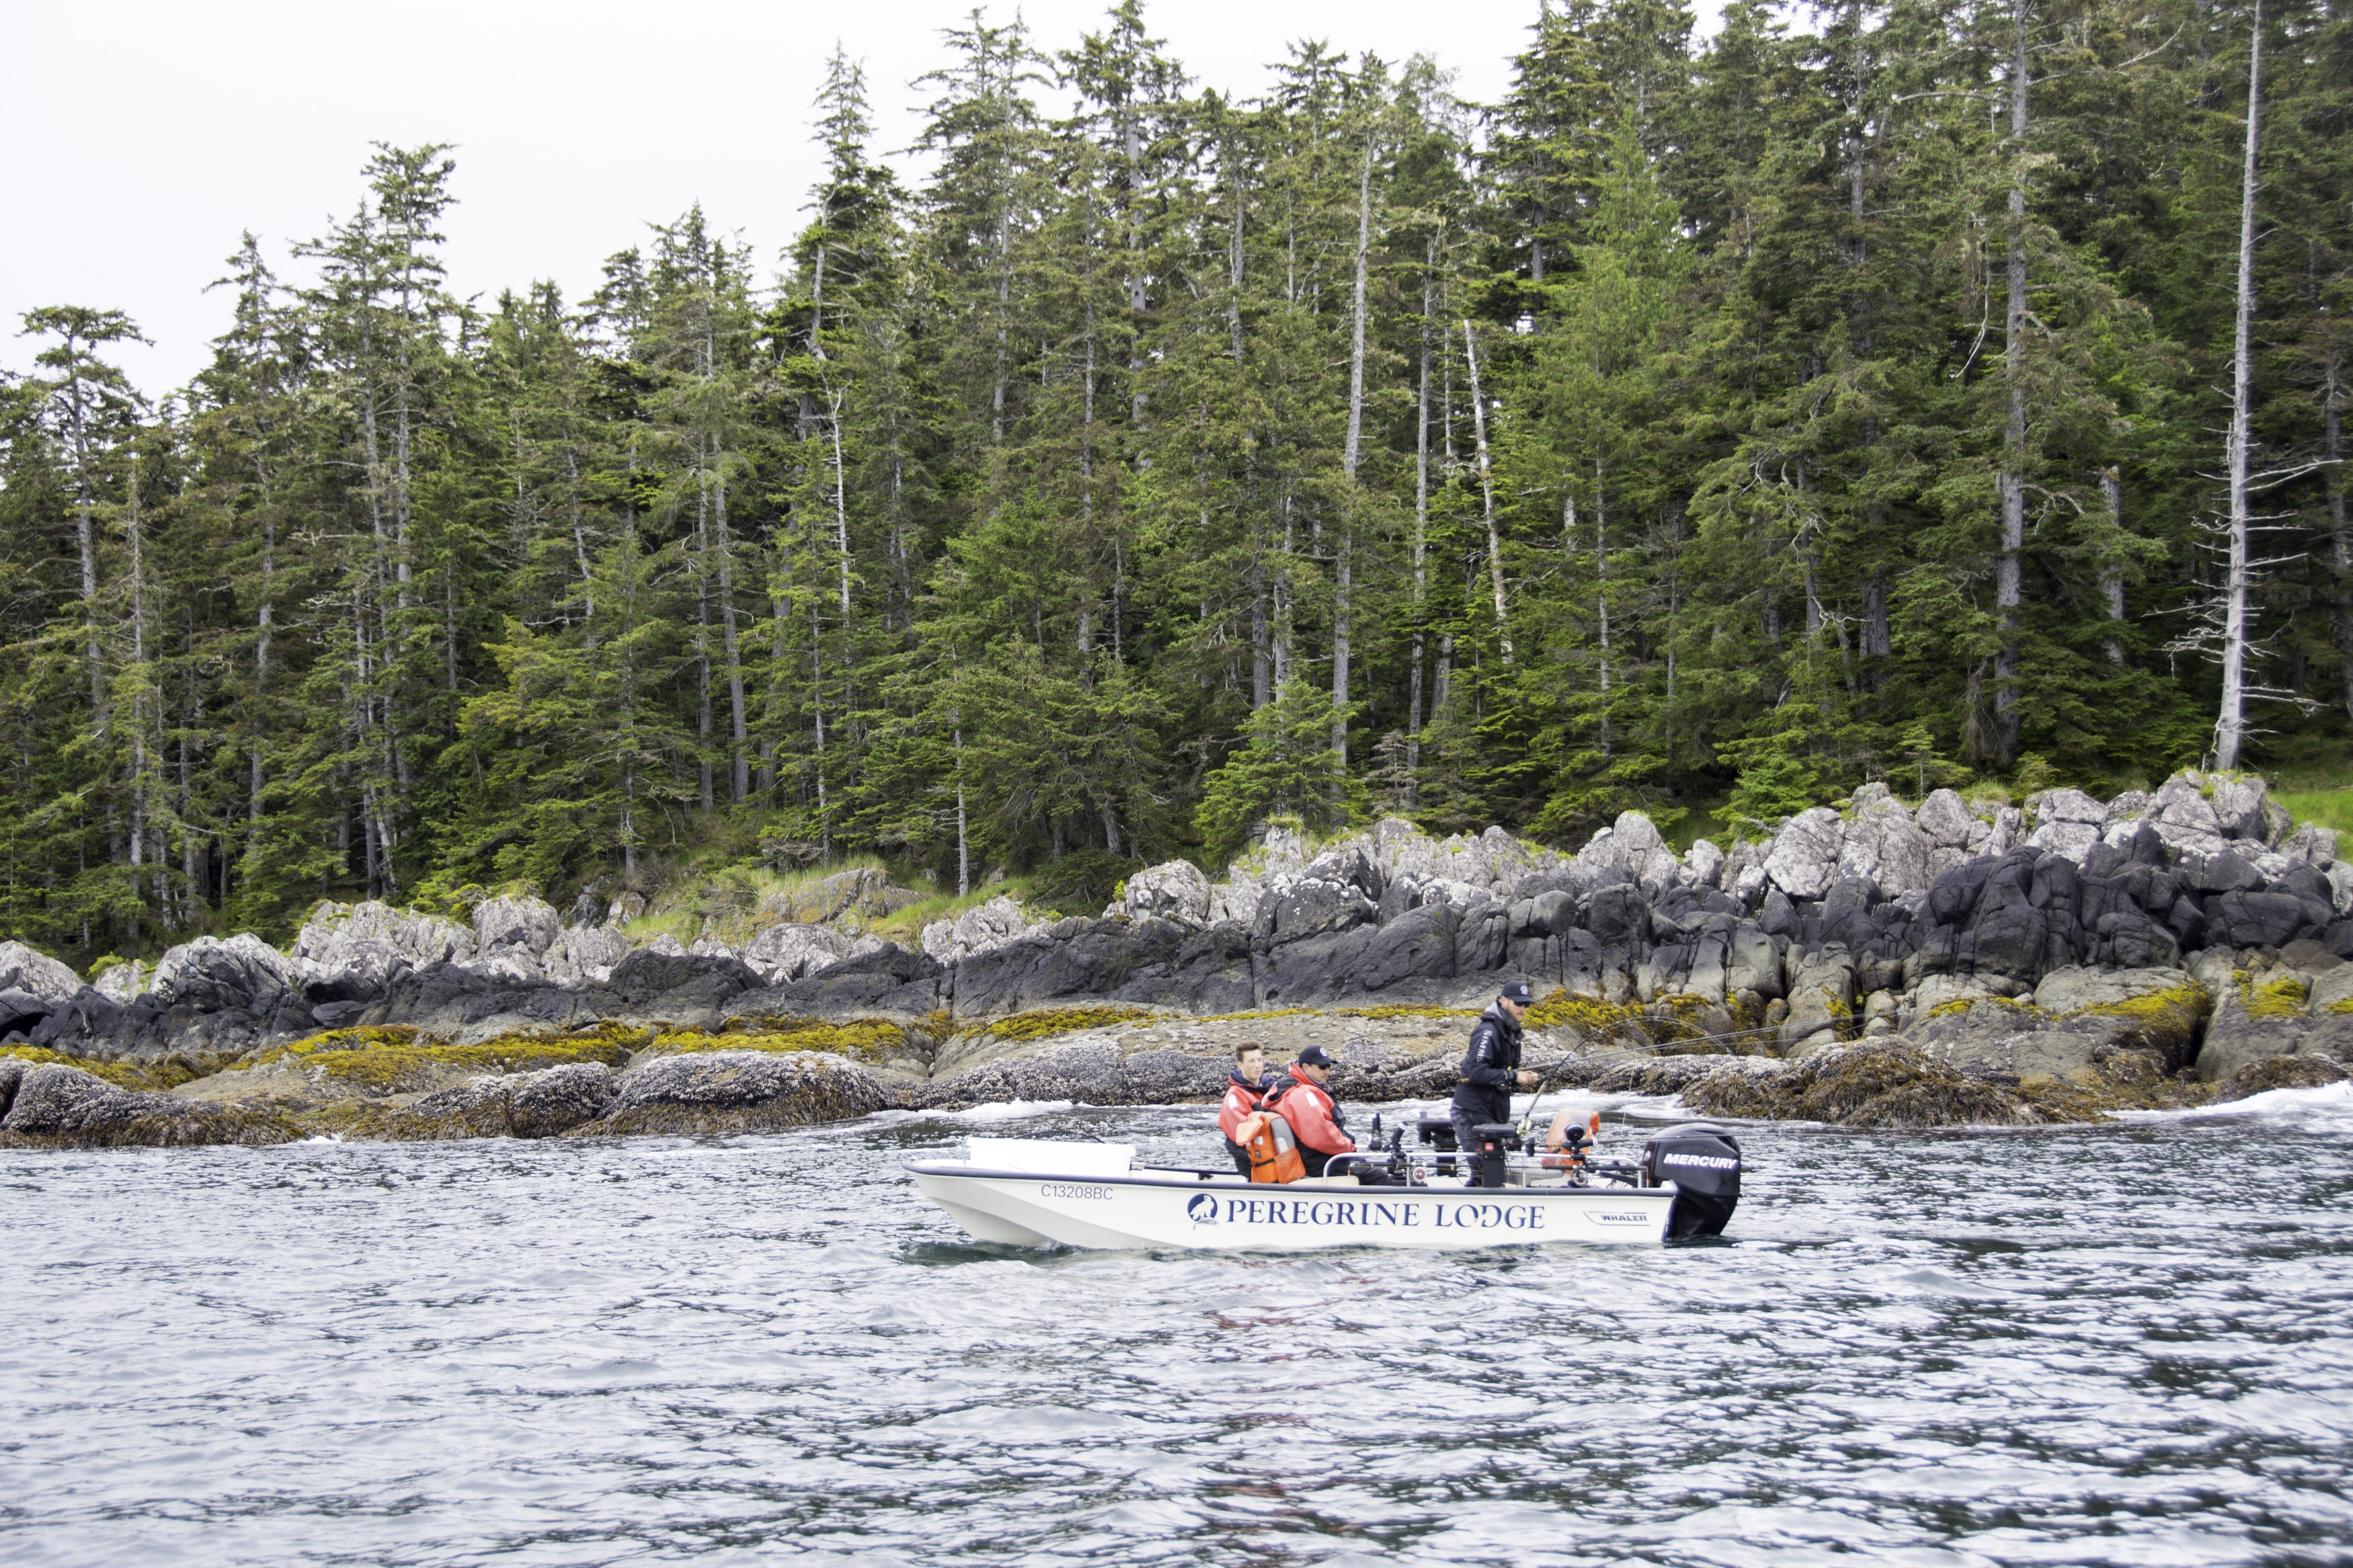 Haida Gwaii Fishing, sport fishing, salmon fishing, fishing adventure